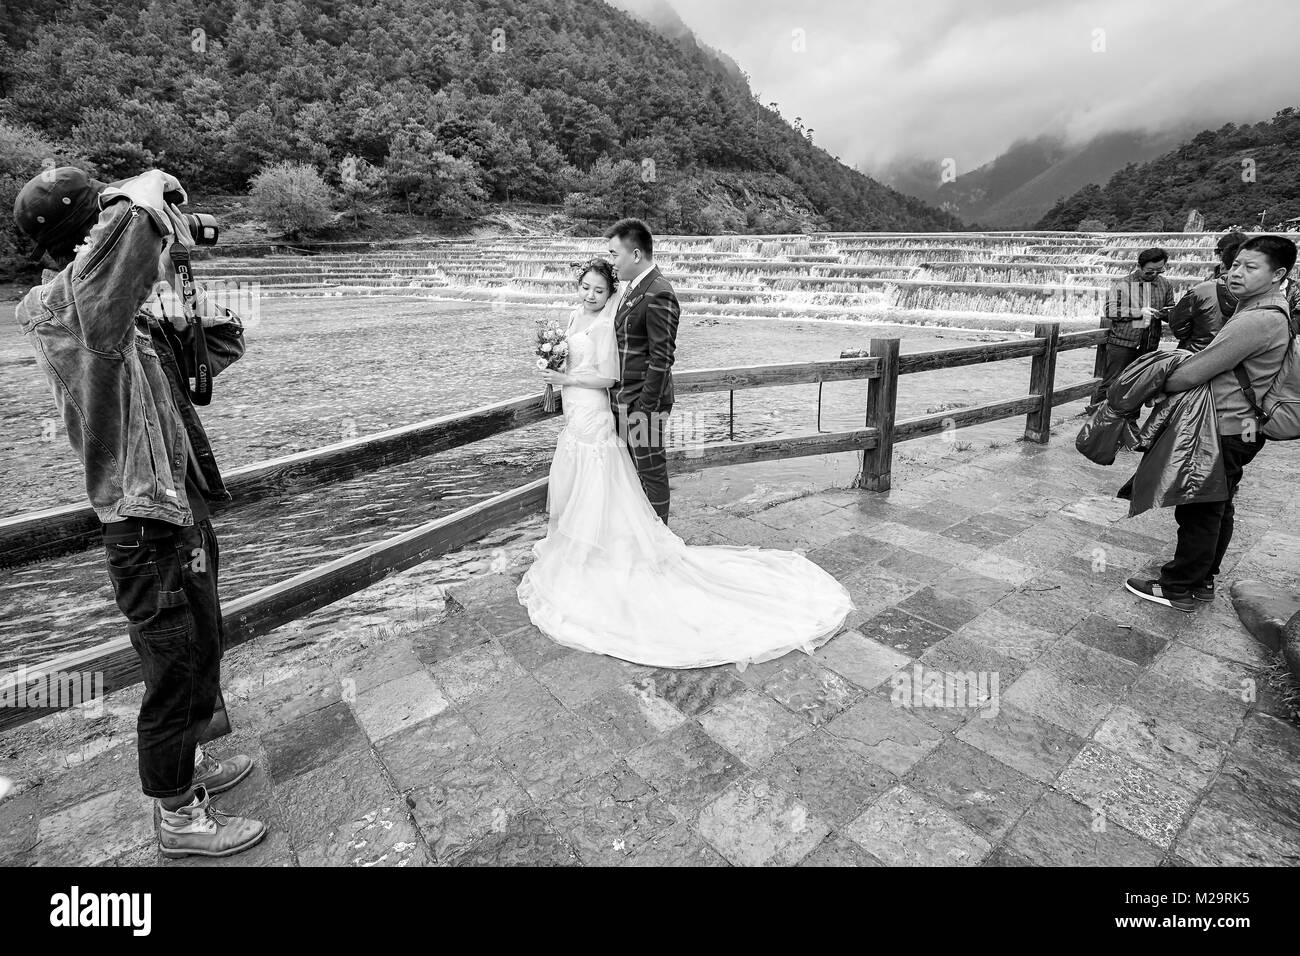 Lijiang, China - September 22, 2017: Wedding couple photo shoot at the White Water River in Blue Moon Valley, one - Stock Image